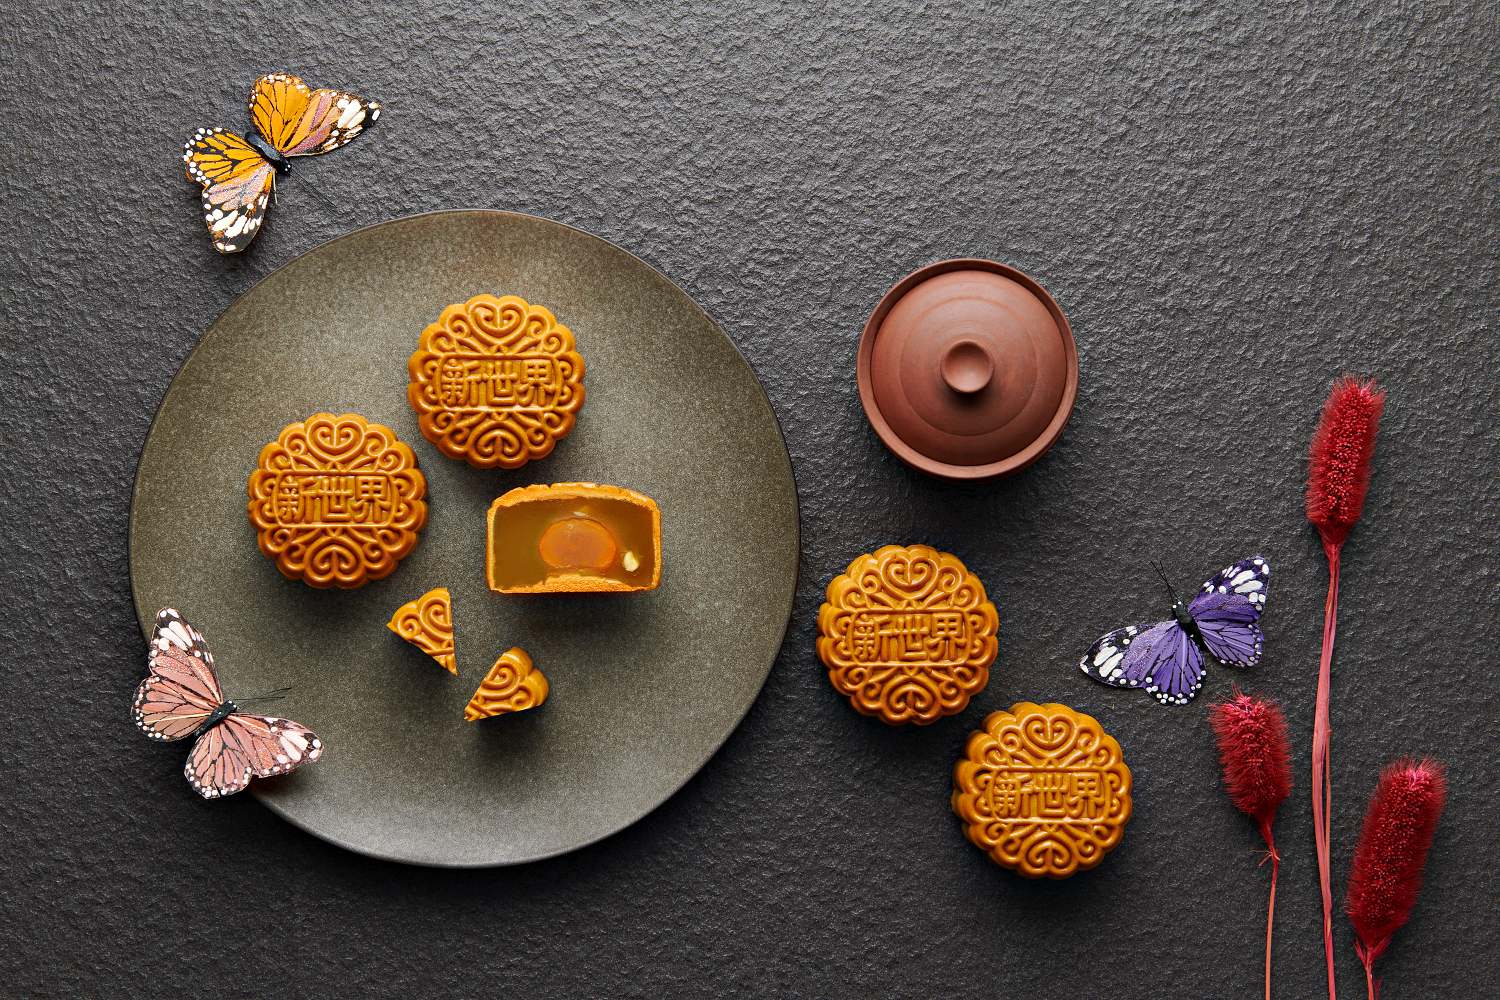 New World Petaling Jaya Hotels introduces Timeless Traditions for Mid-Autumn Festival